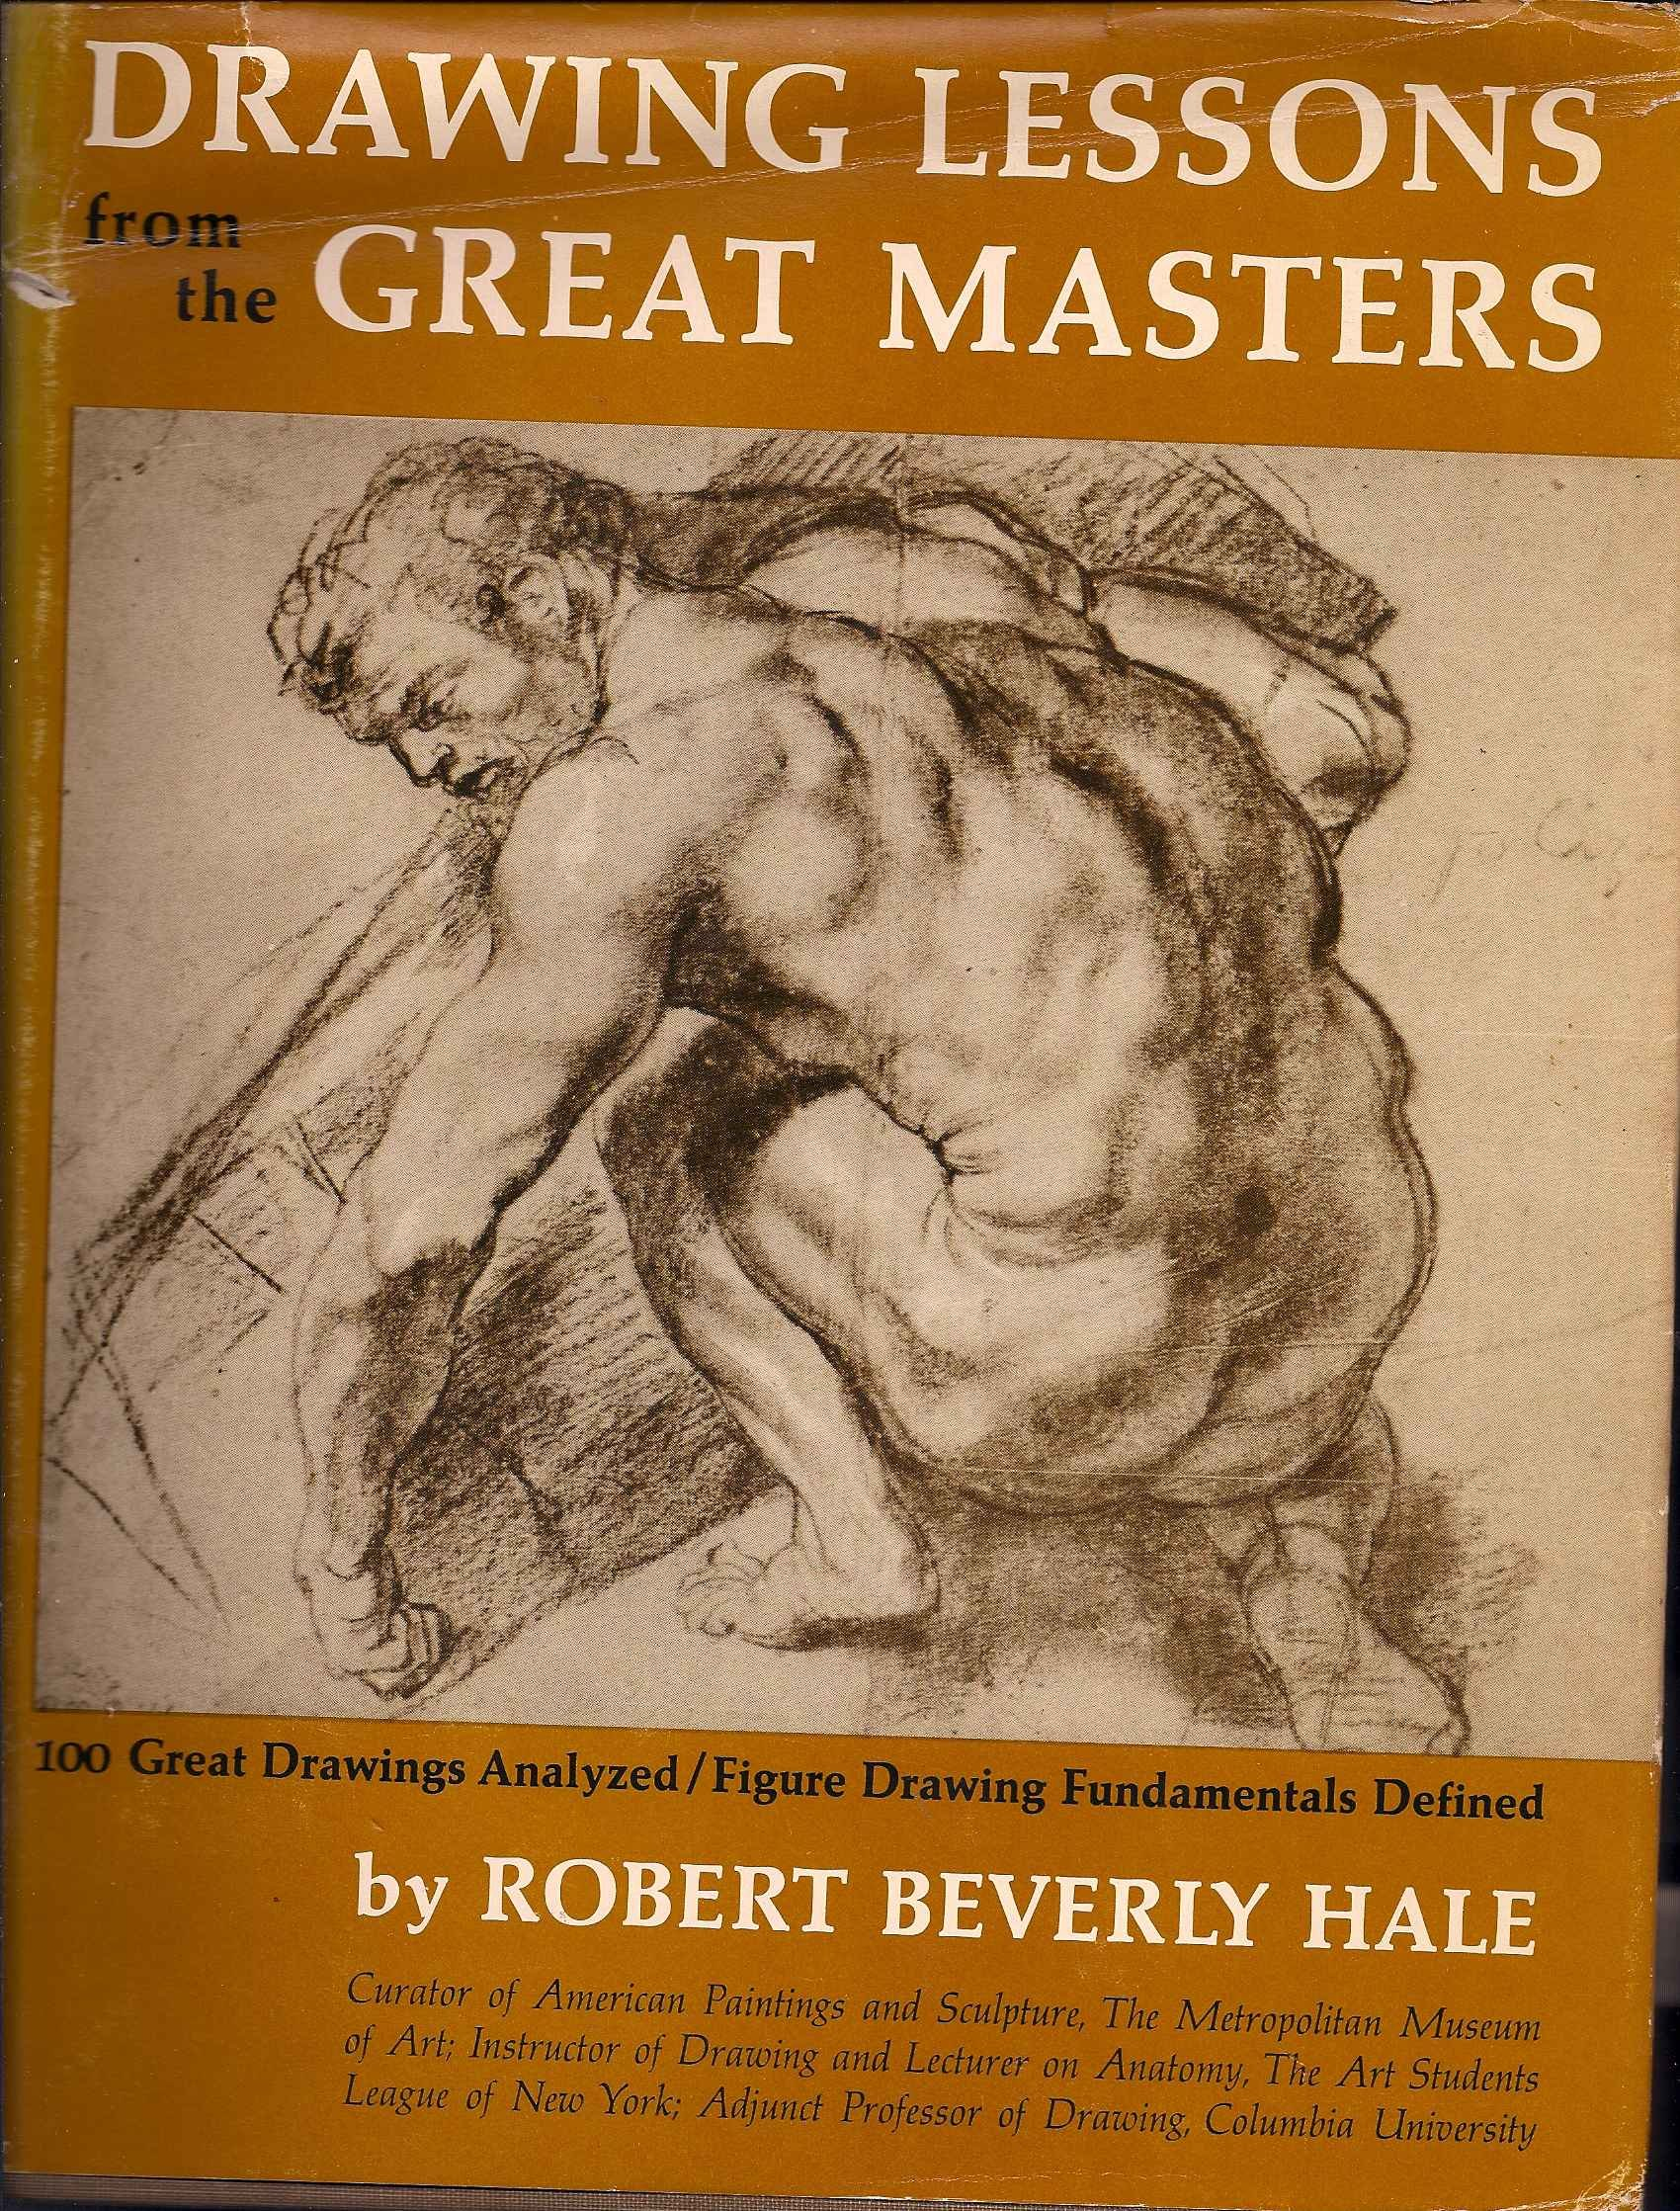 Drawing Lessons from the Great Masters: Amazon.de: Robert Beverly ...